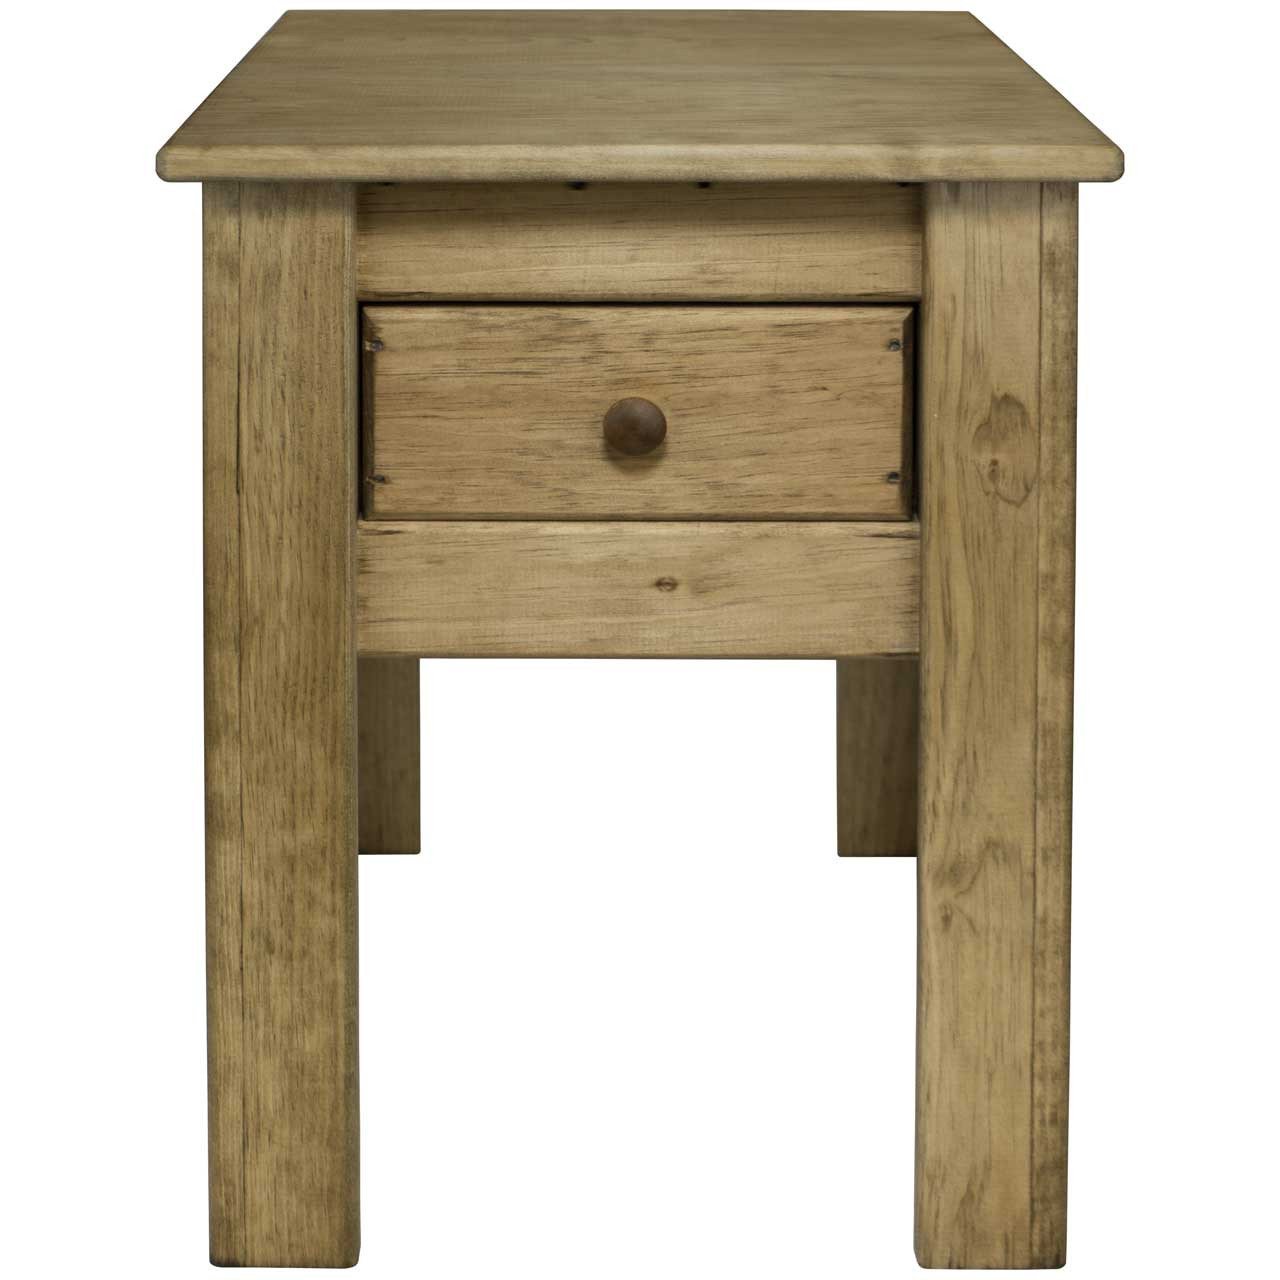 Shaker wood side table 24 inch high end table for High end side tables